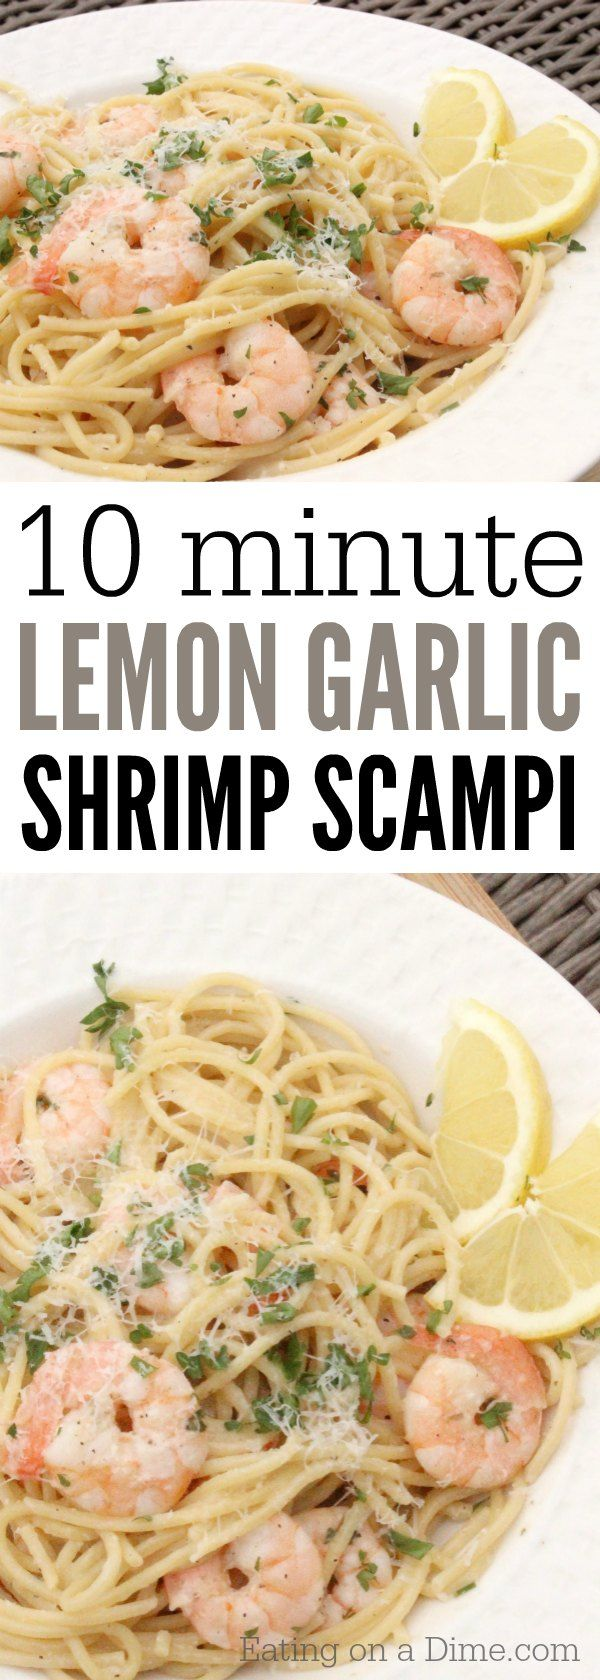 Lemon Garlic Shrimp Scampi #shrimppasta